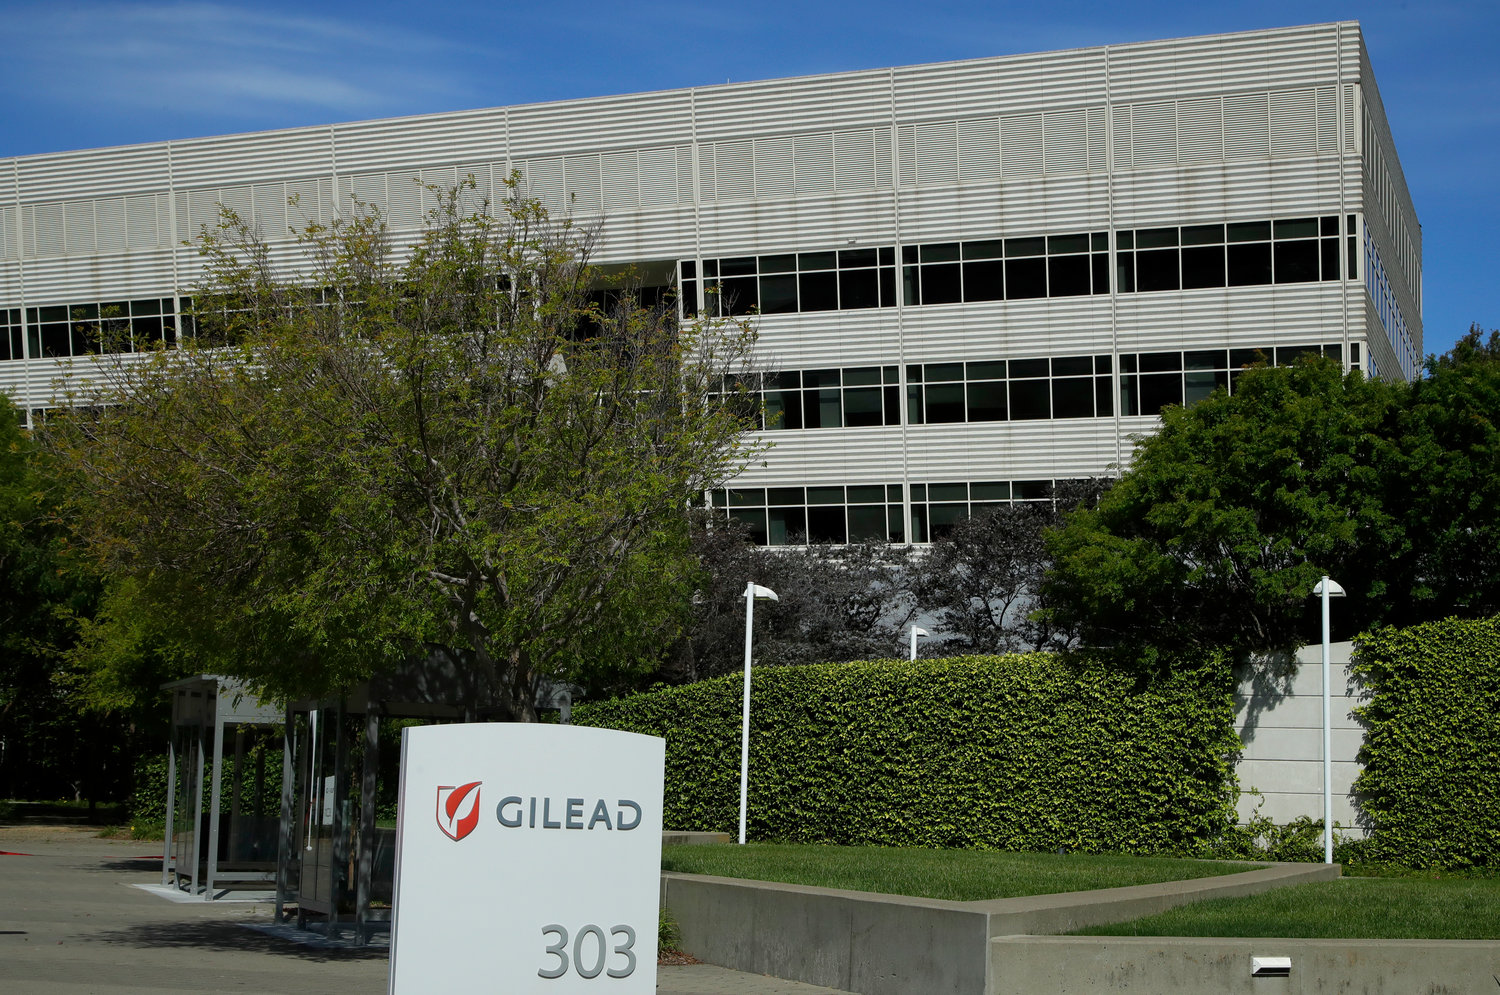 PRICE SET — This April 2020, file photo shows Gilead Sciences headquarters in Foster City, Calif. The maker of a drug shown to shorten recovery time for severely ill COVID-19 patients says it will charge $2,340 for a typical treatment course for people covered by government health programs in the United States and other developed countries. (AP Photo)